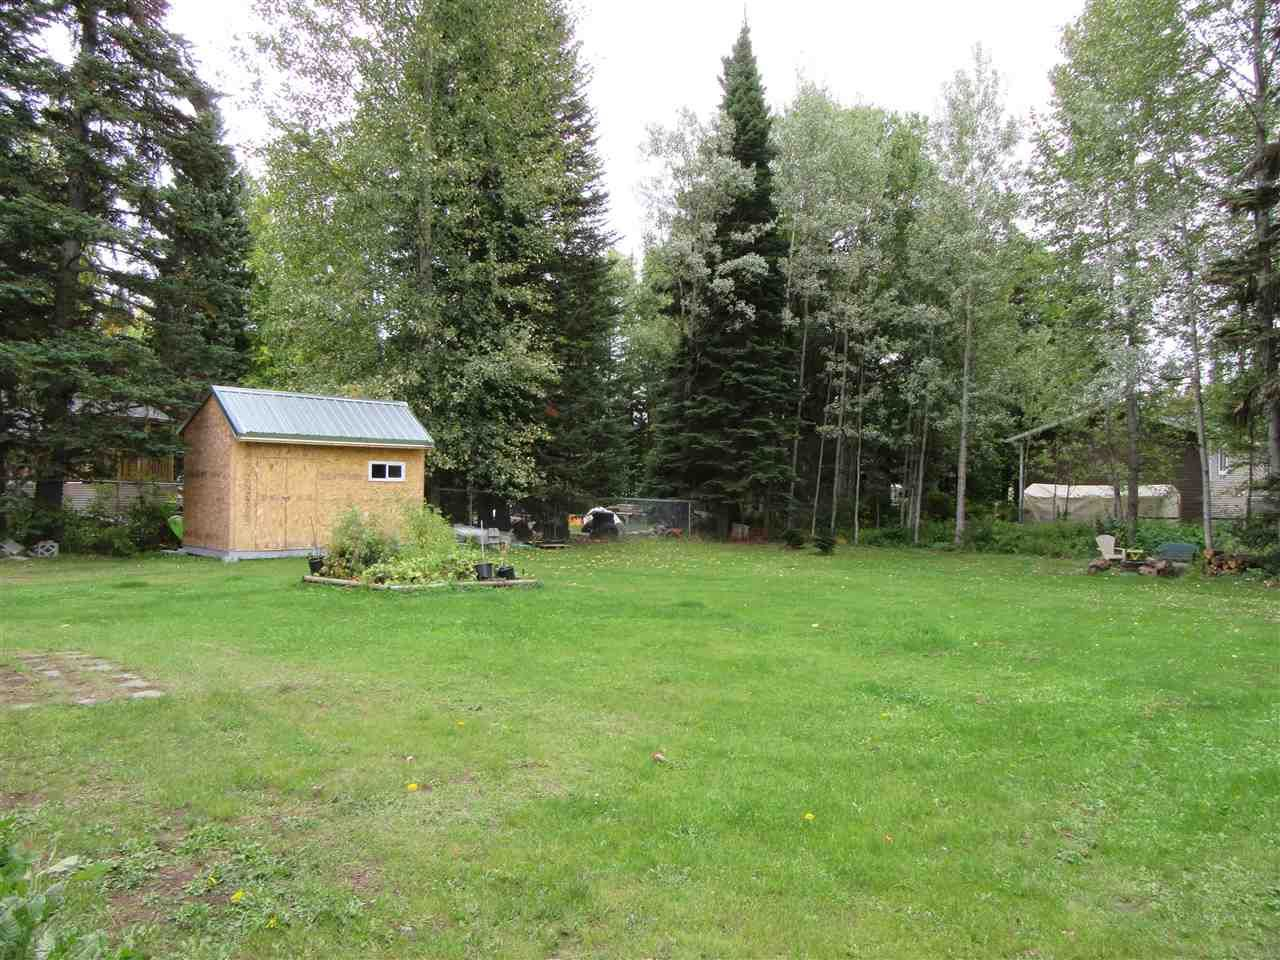 Photo 4: Photos: 4261 ARABIAN Road in Prince George: Emerald House for sale (PG City North (Zone 73))  : MLS®# R2404002